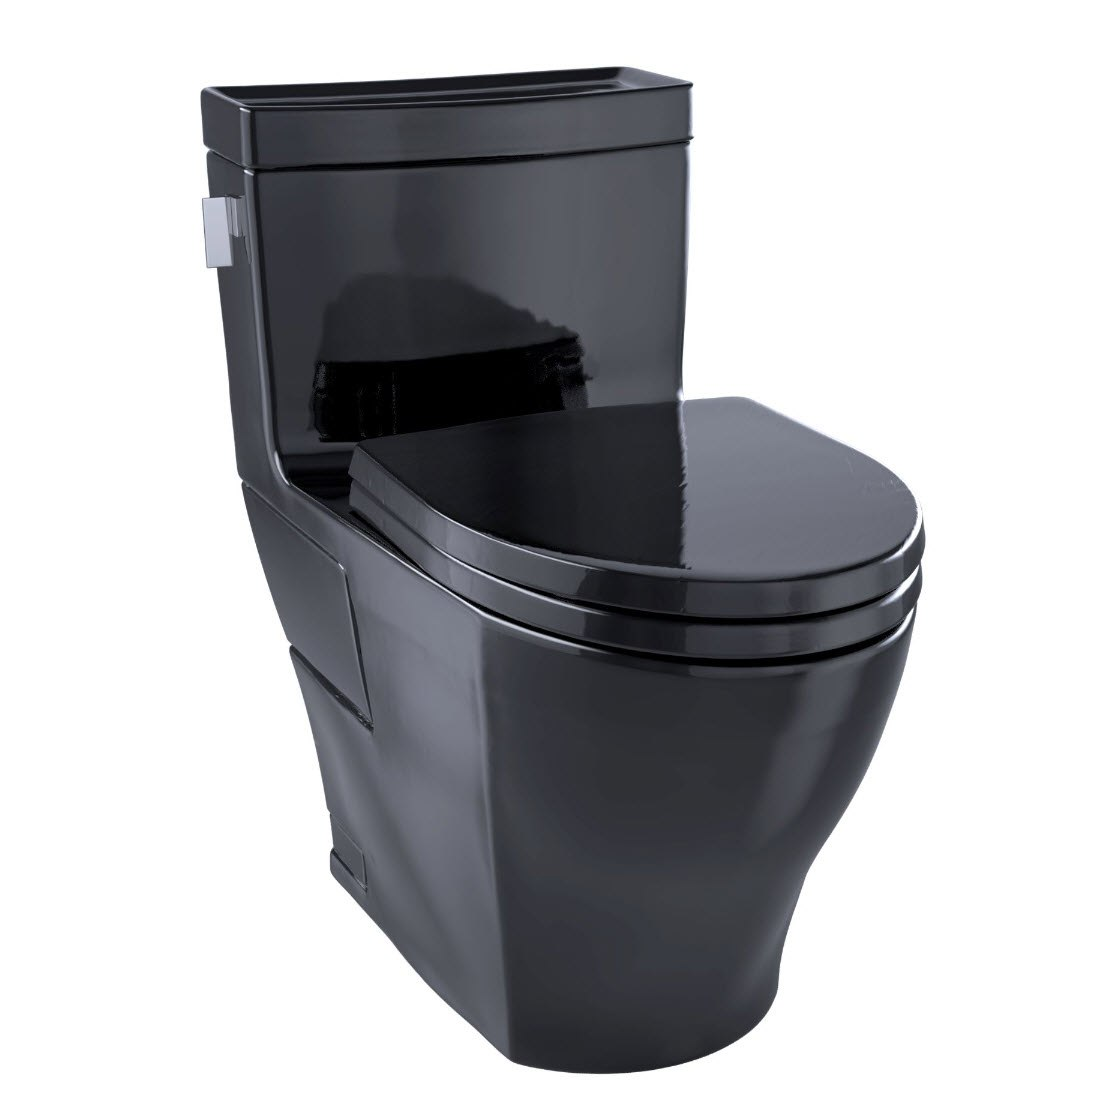 TOTO MS624124CEF#51 LEGATO ONE-PIECE ELONGATED 1.28 GPF UNIVERSAL HEIGHT TOILET WITH SS124 SEAT IN EBONY